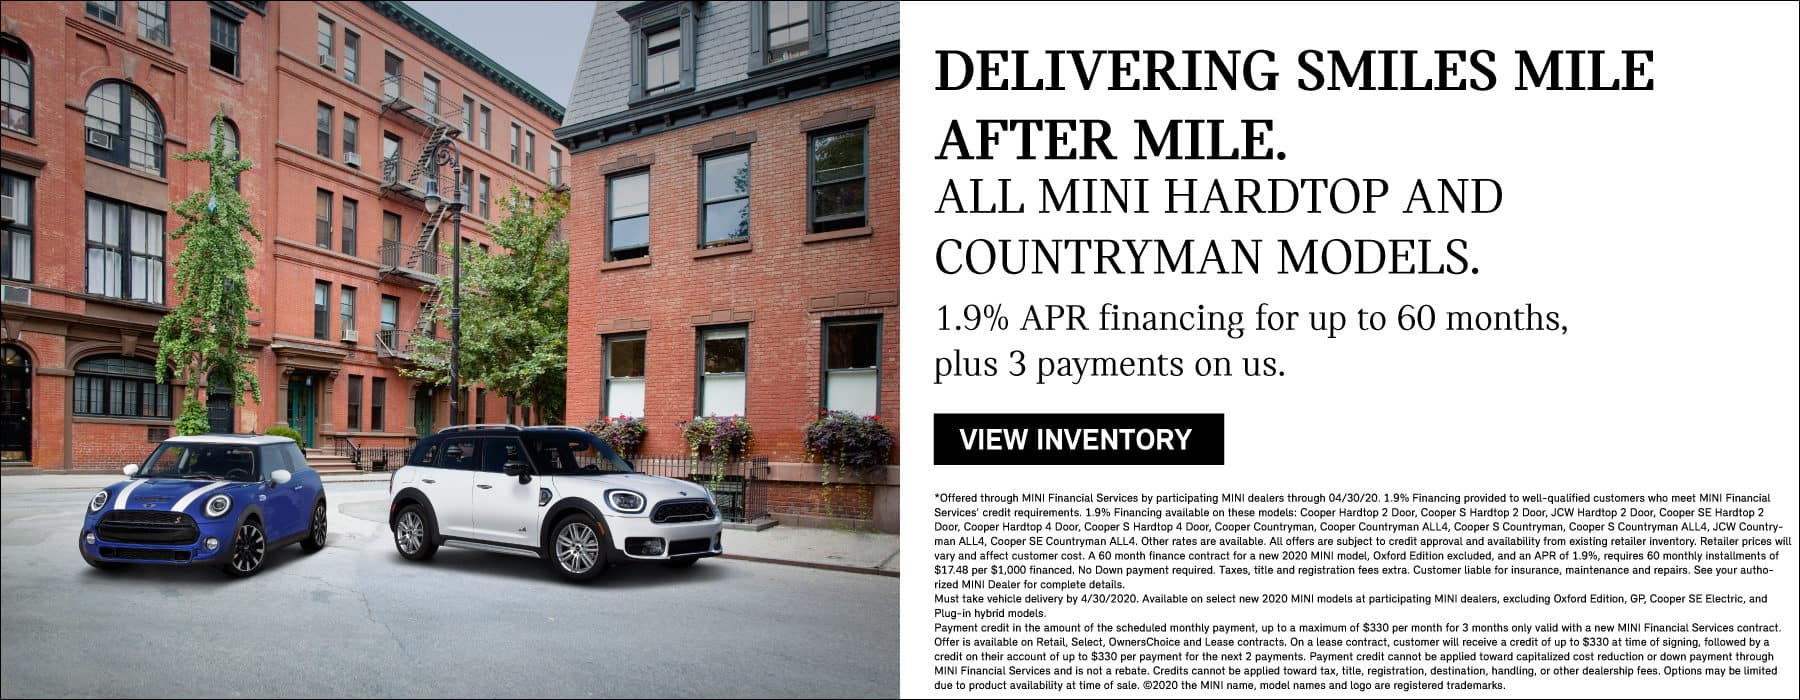 DELIVERING SMILES MILE AFTER MILE. All MINI Hardtops and Countryman models. 1.9% APR financing for 60 months, plus 3 payments on us.